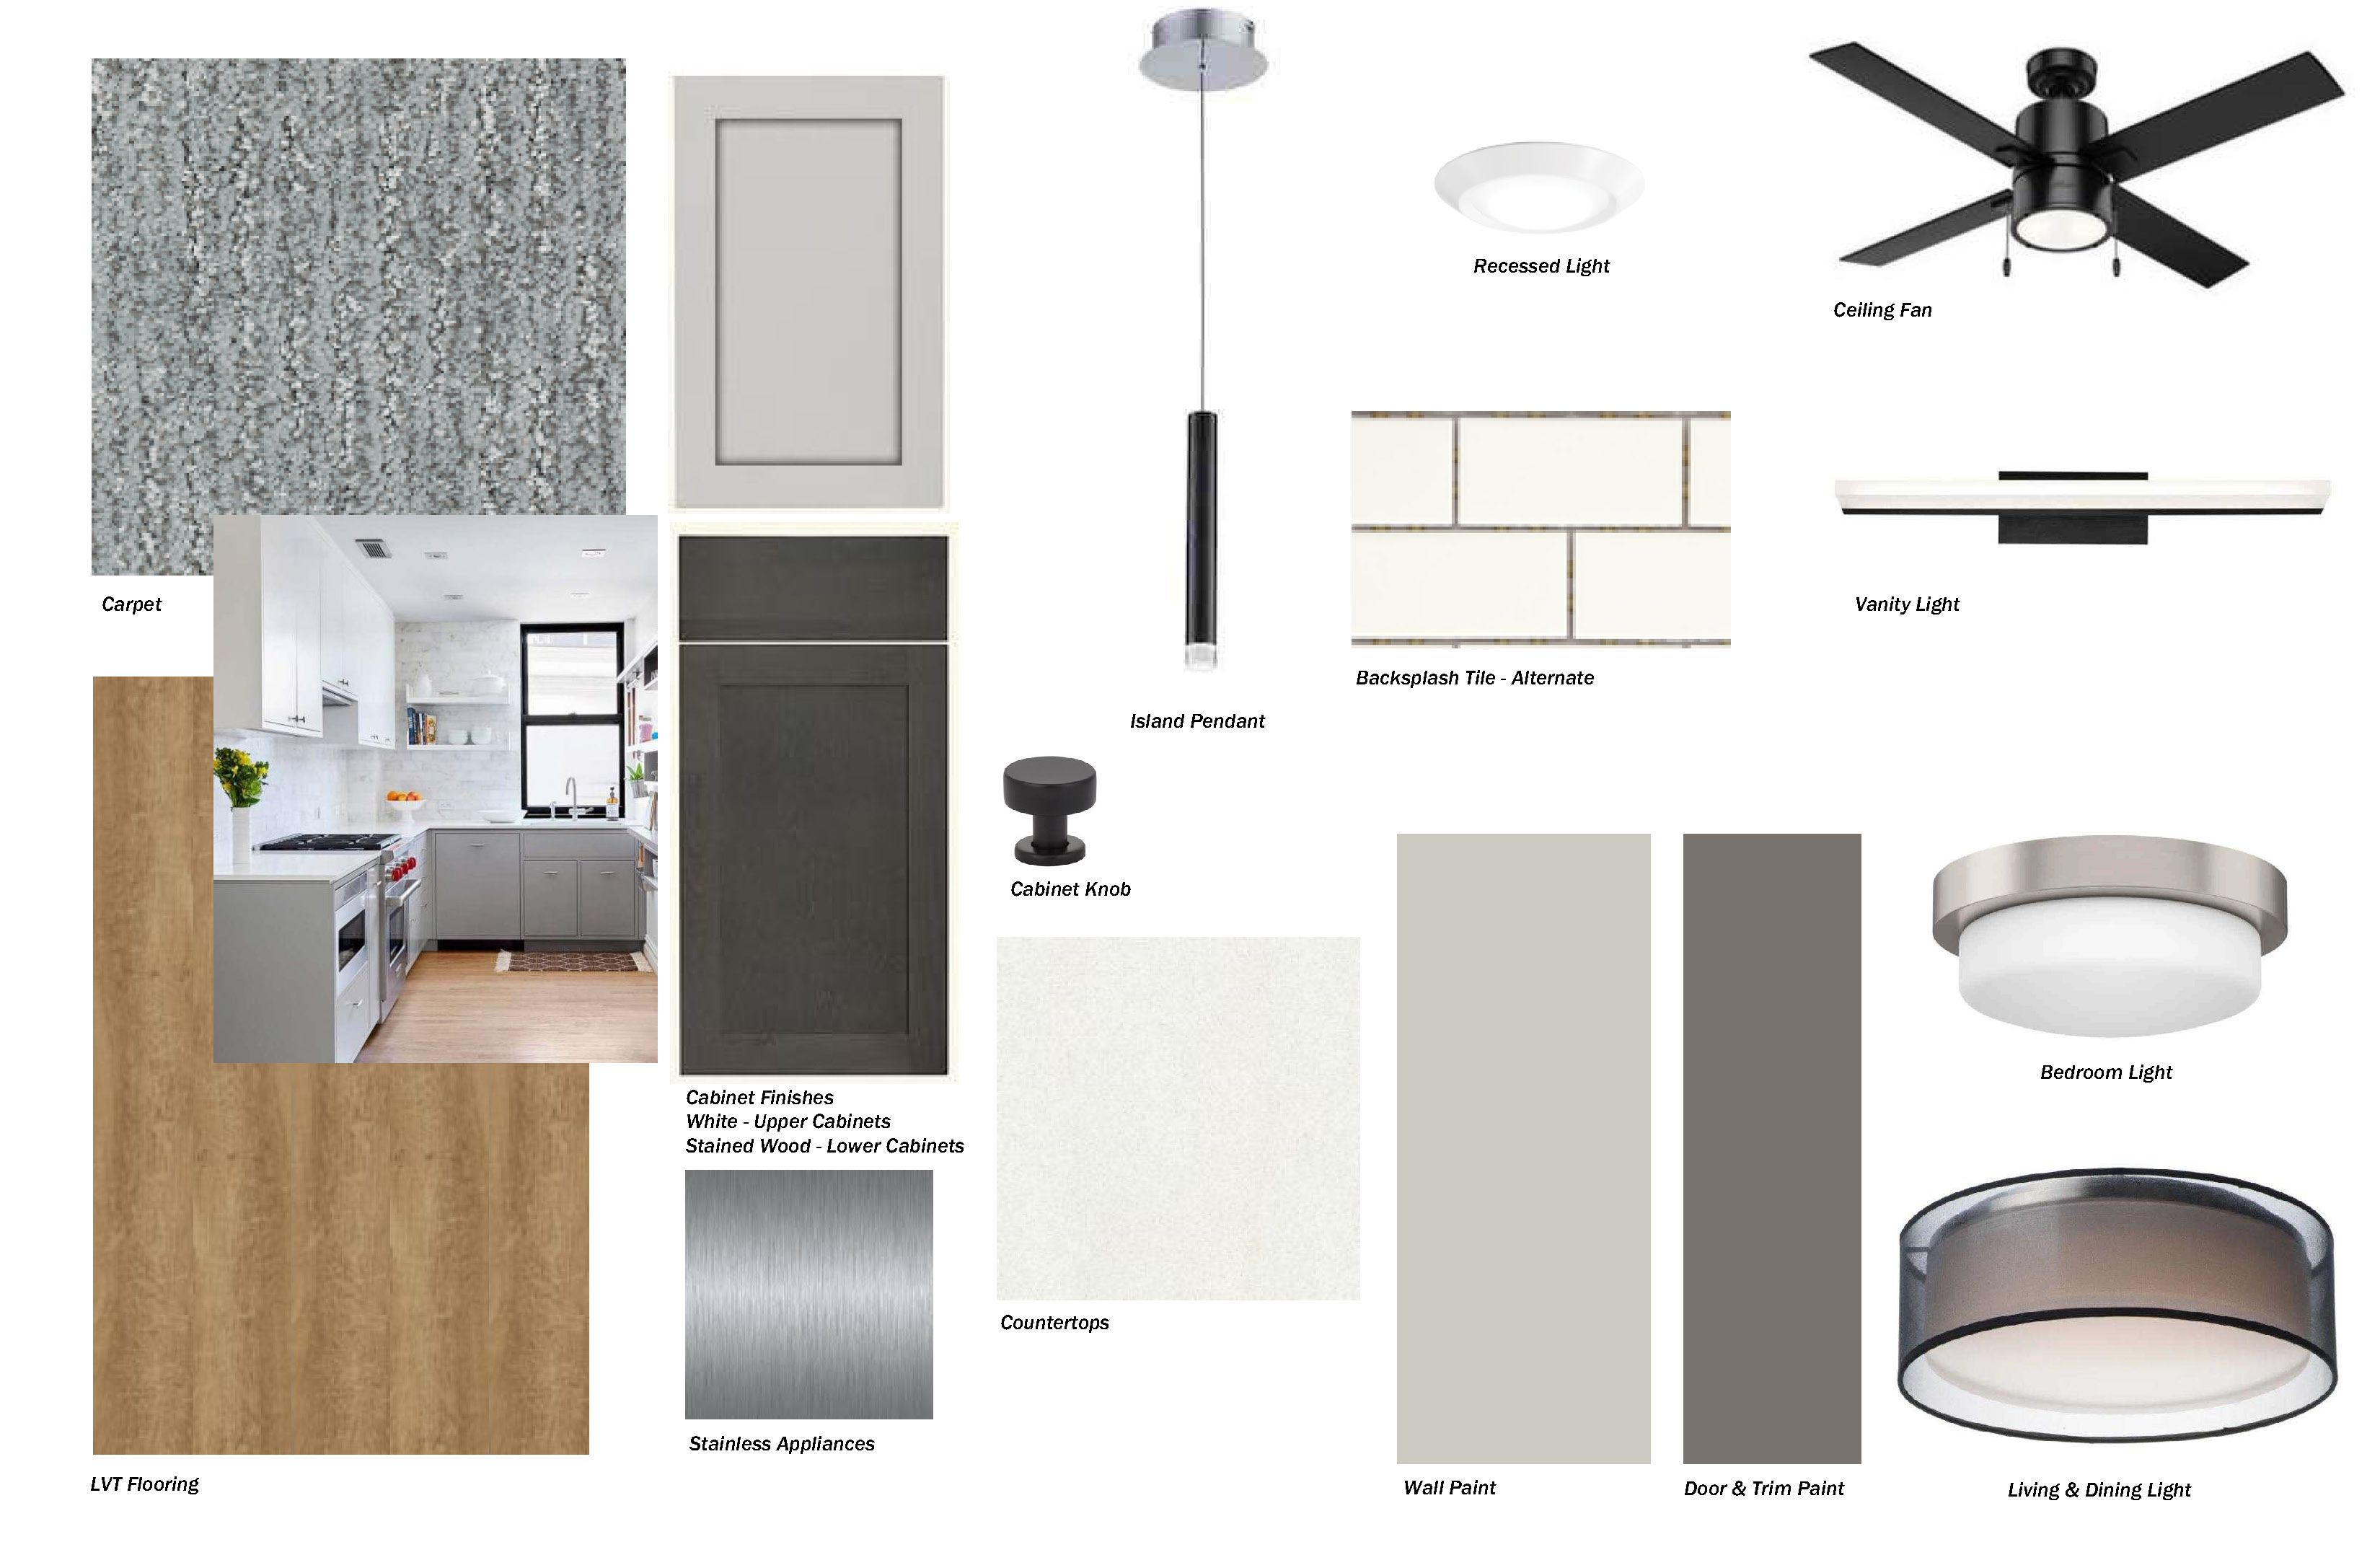 Slate floor plan finishes for Haven at Uptown